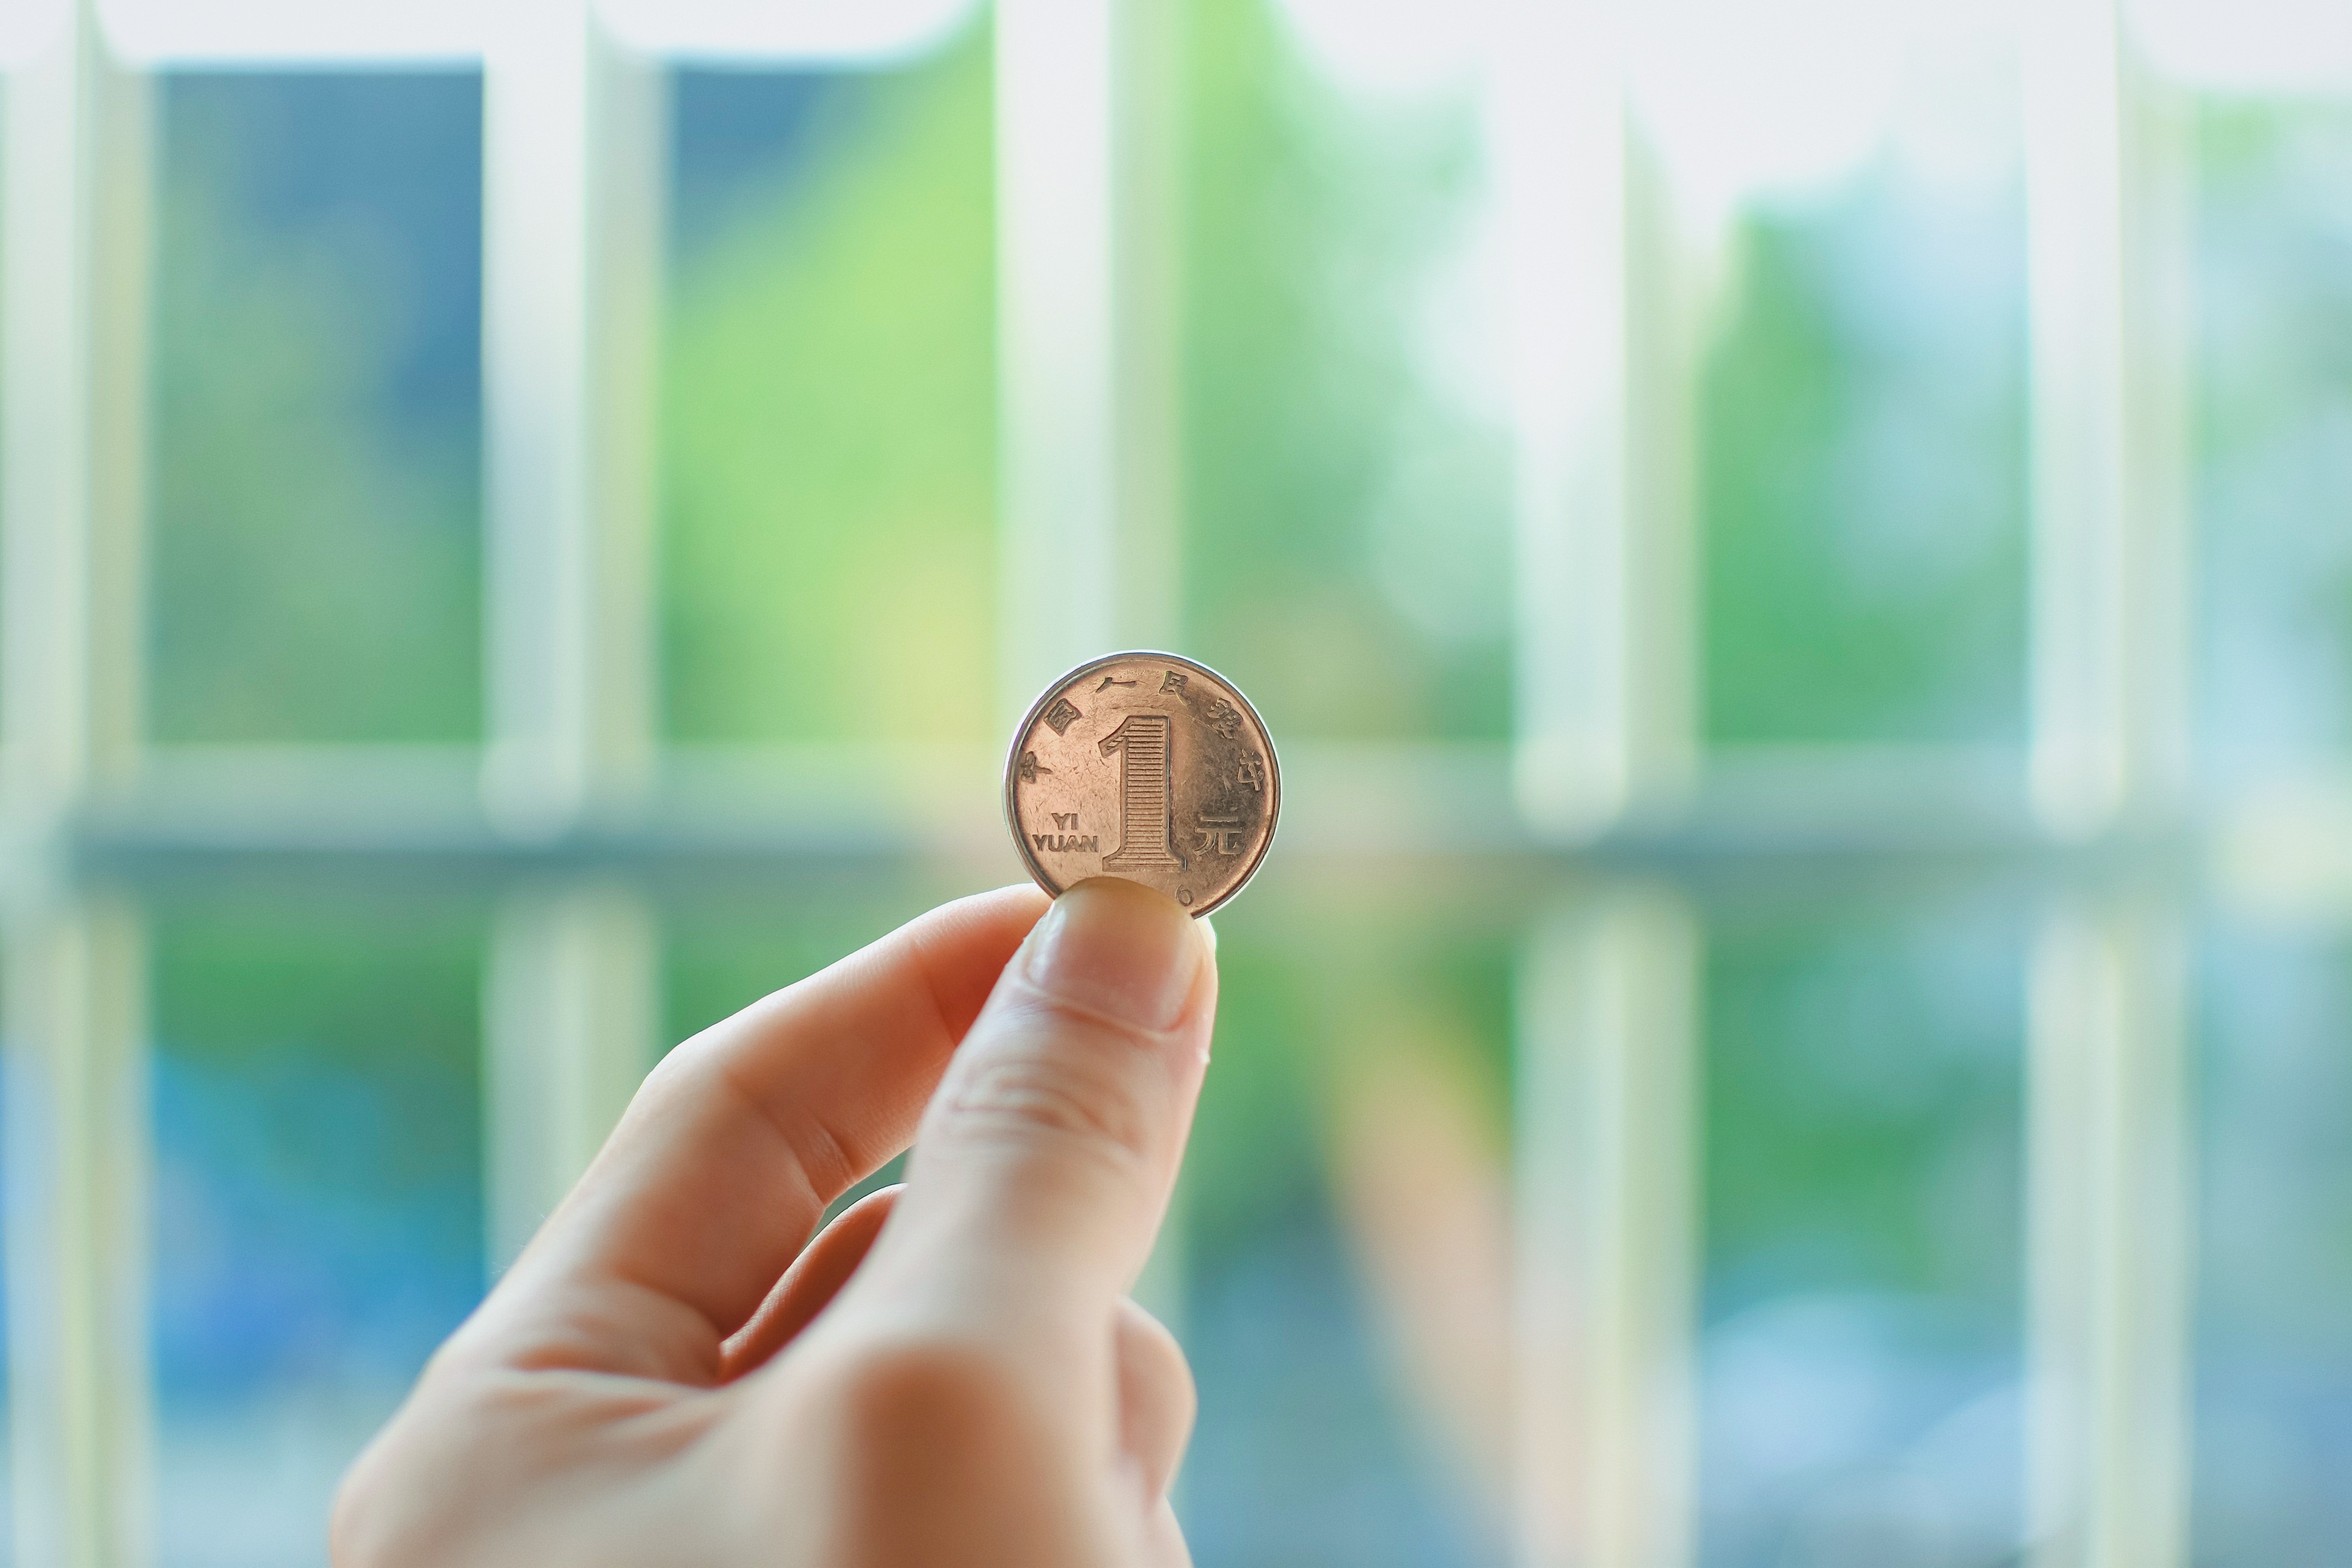 A picture of a coin. | Source: Unsplash.com